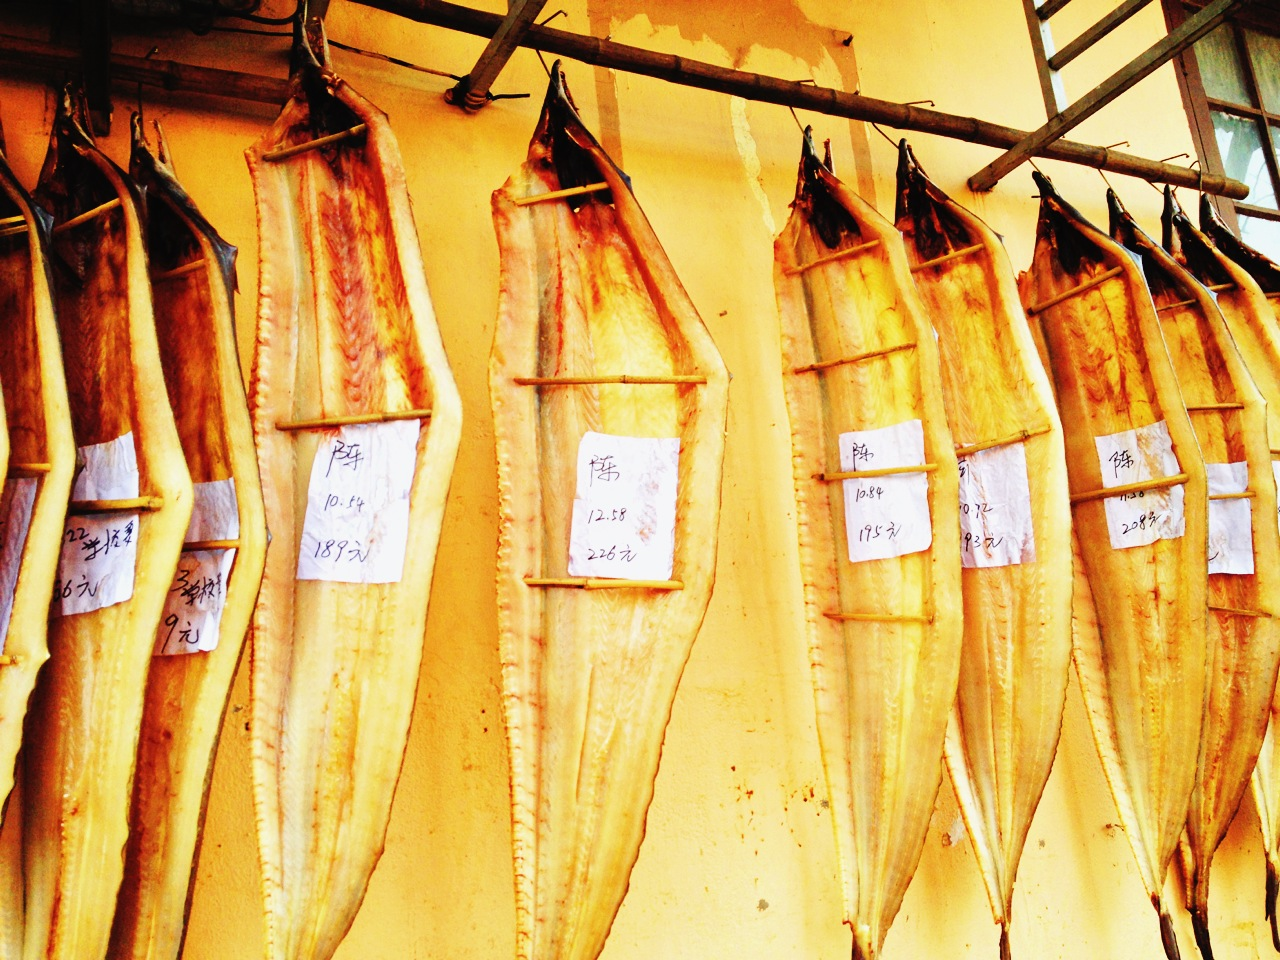 Dry-cured fish hanged alongthe street